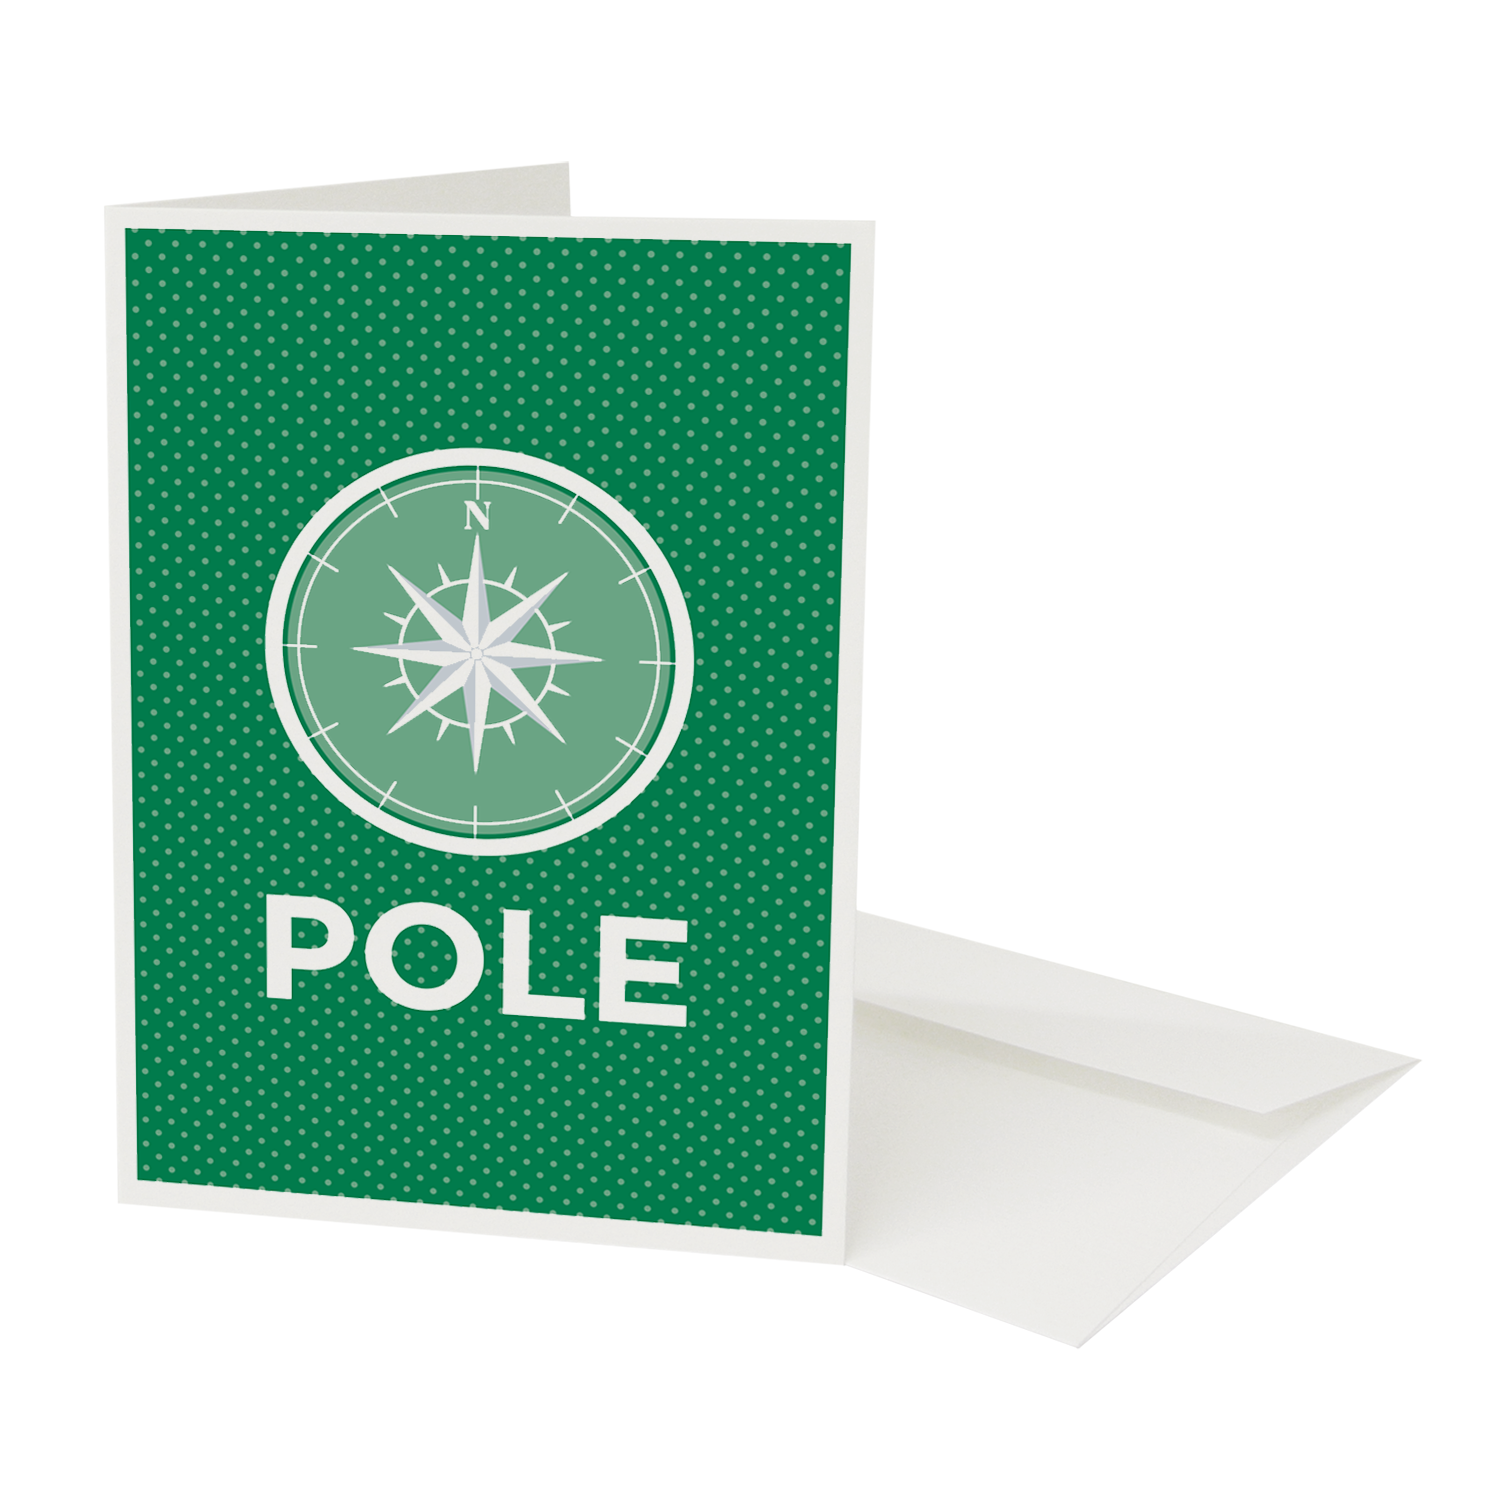 Place in Print Pate North Pole Christmas Greetings Card Green